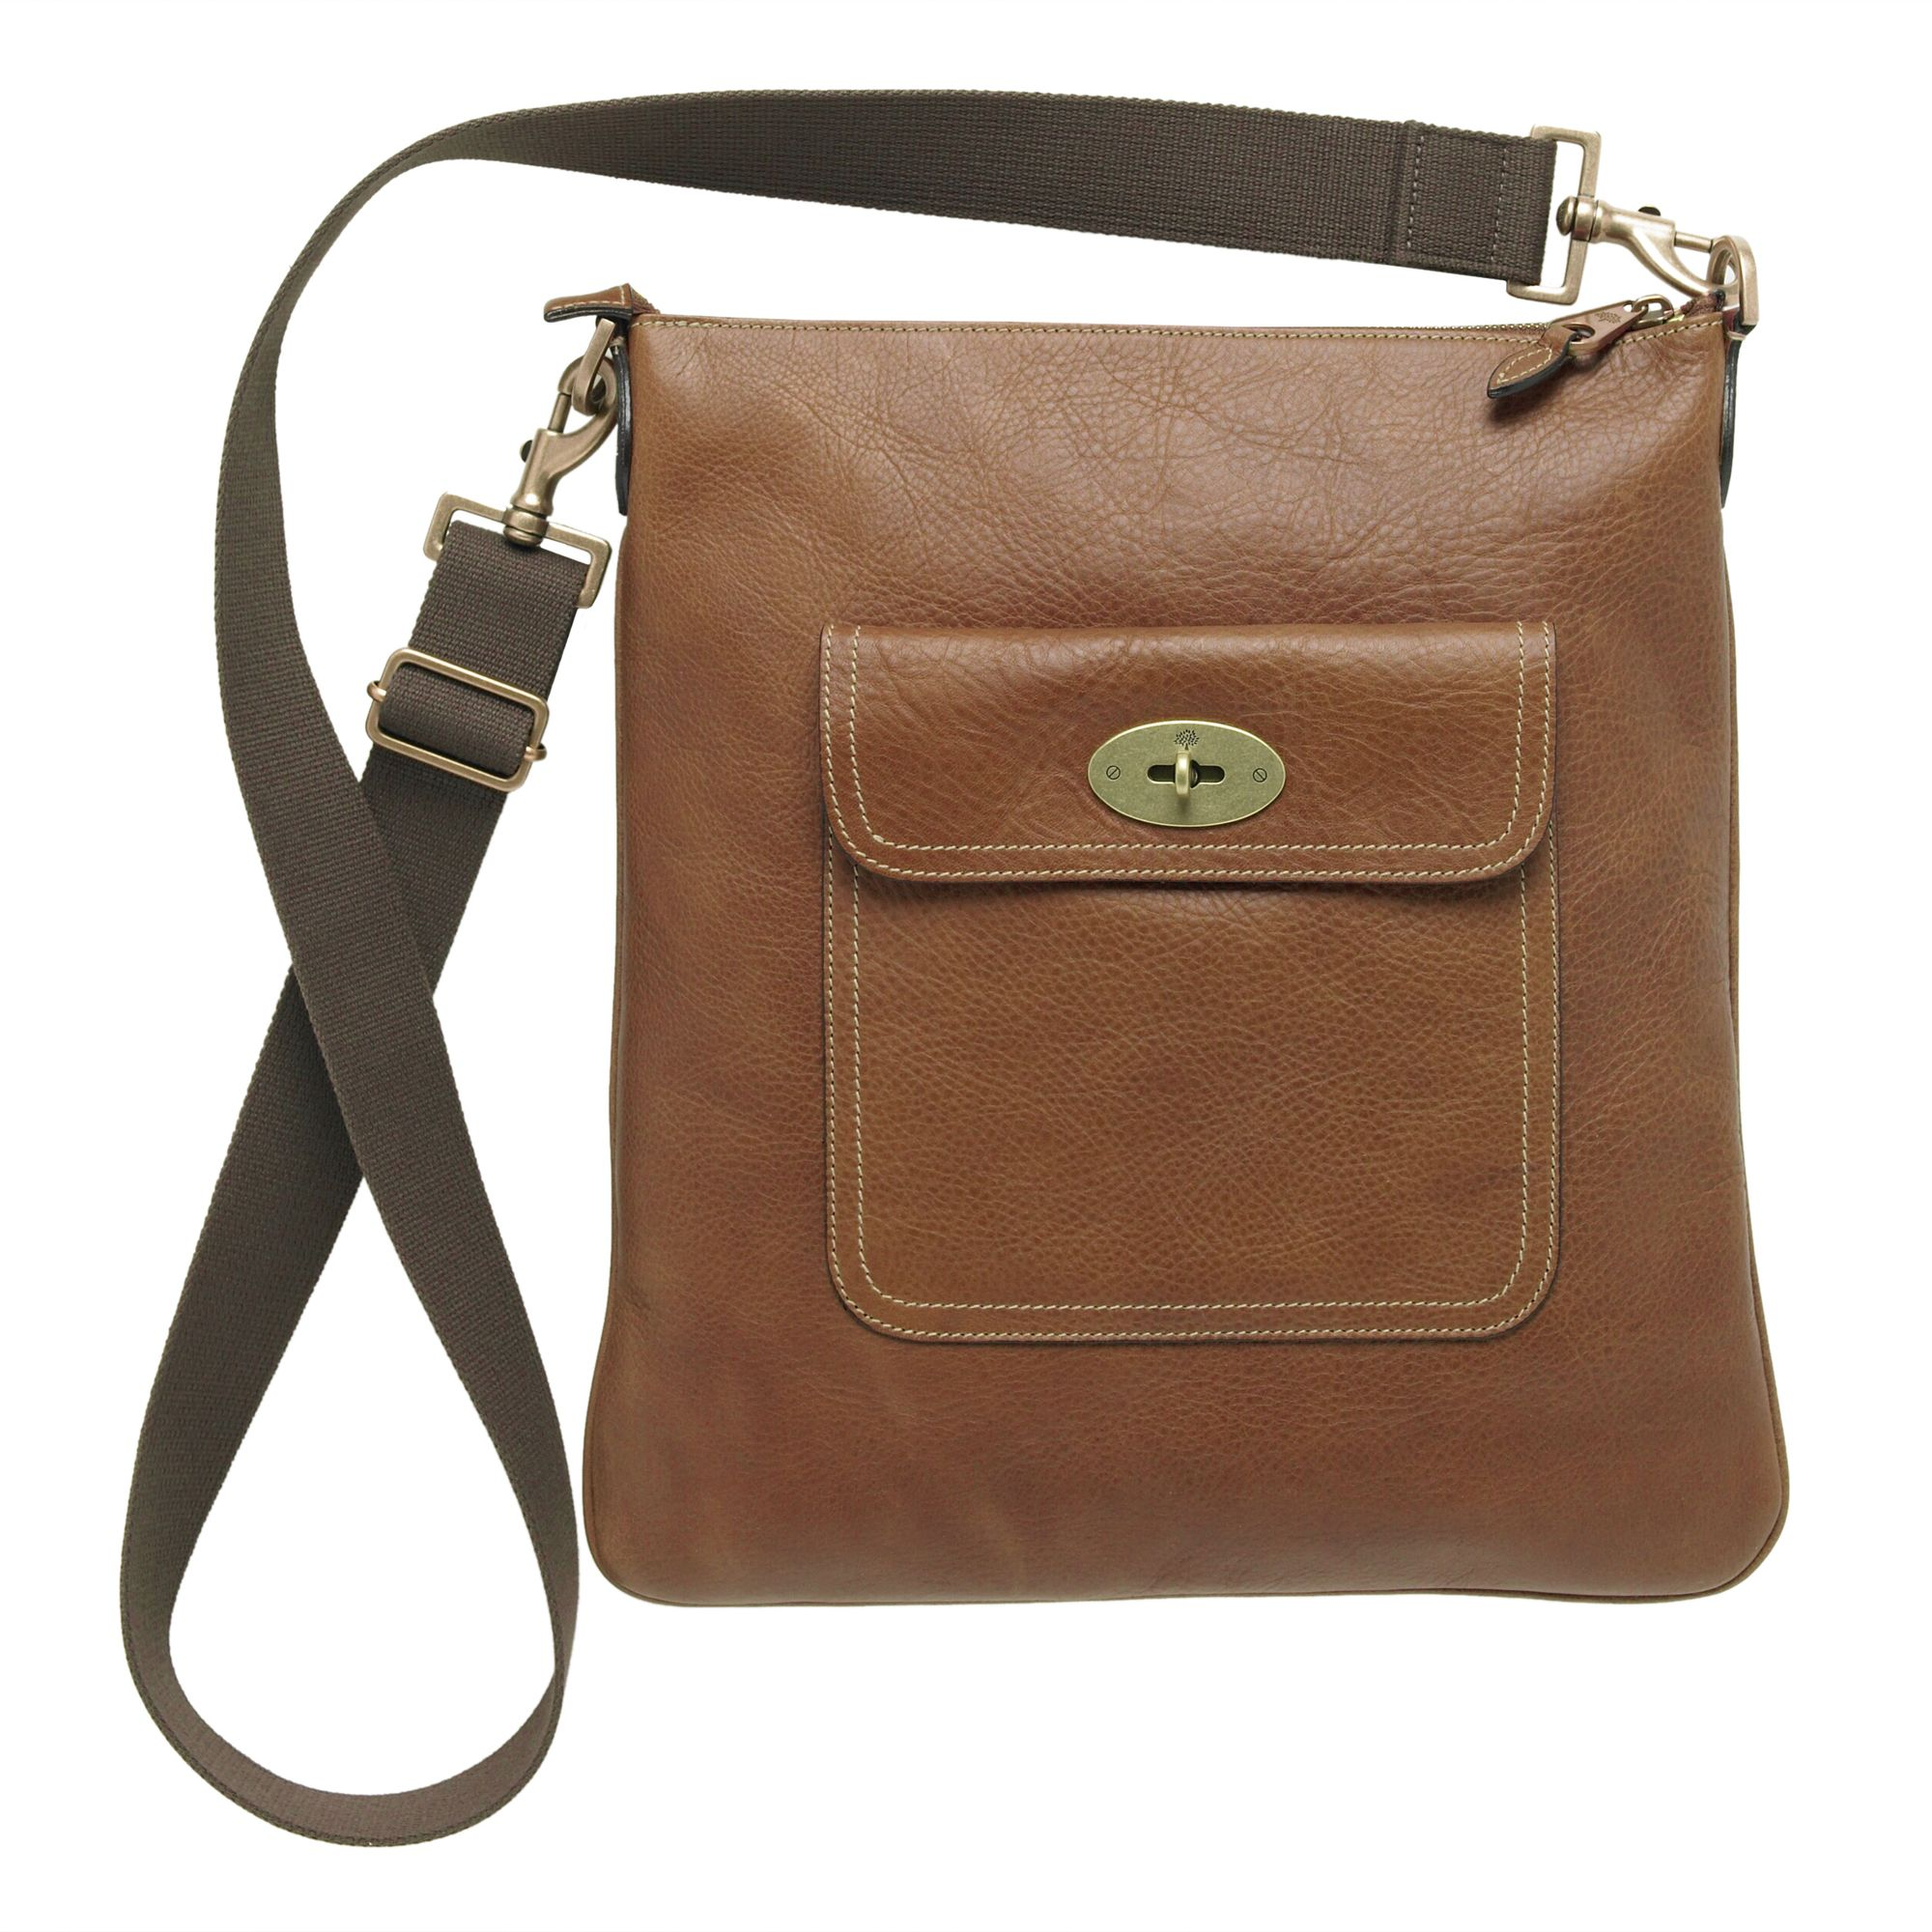 1b29b5e4a3b5 Mulberry Seth Messenger Bag in Brown - Lyst